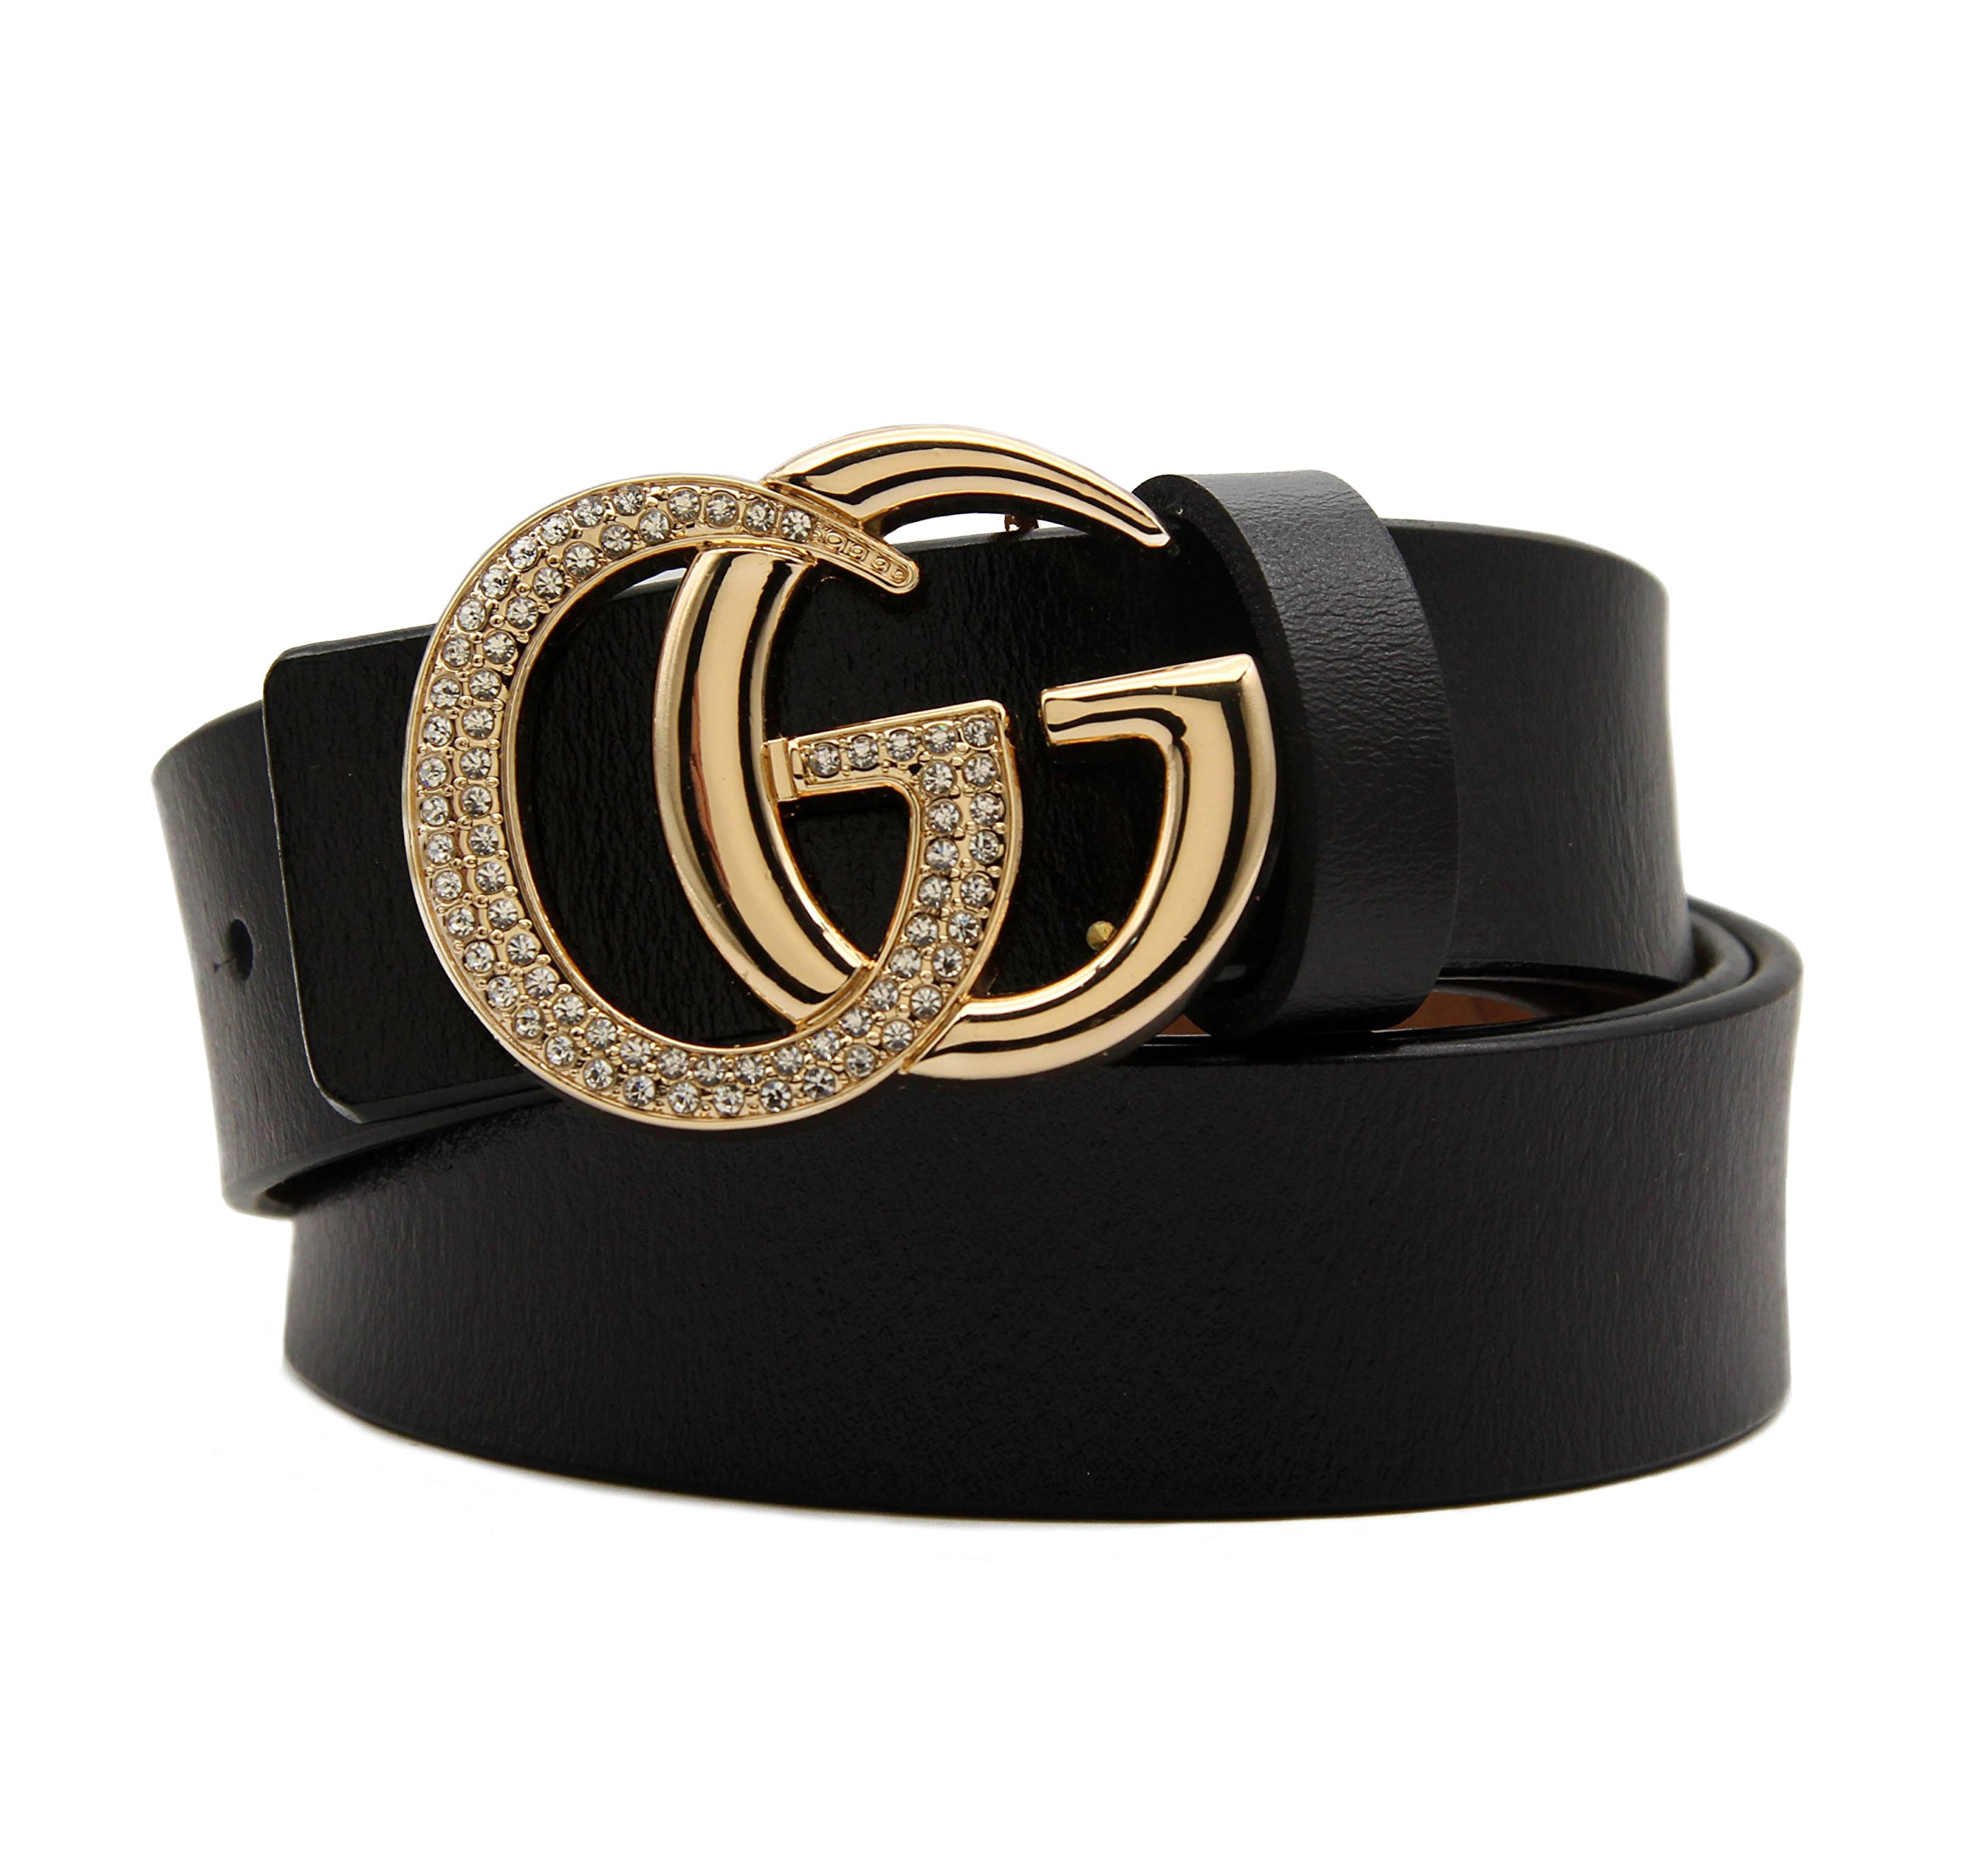 Women's Cowhide Leather Belt Gold Zircon Buckle for Pants Jeans Shorts Ladies Design Genuine Belts for GAGOTE (105cm/41.3'', pants size 26''-30'', Black) by GAGOTE (Image #1)